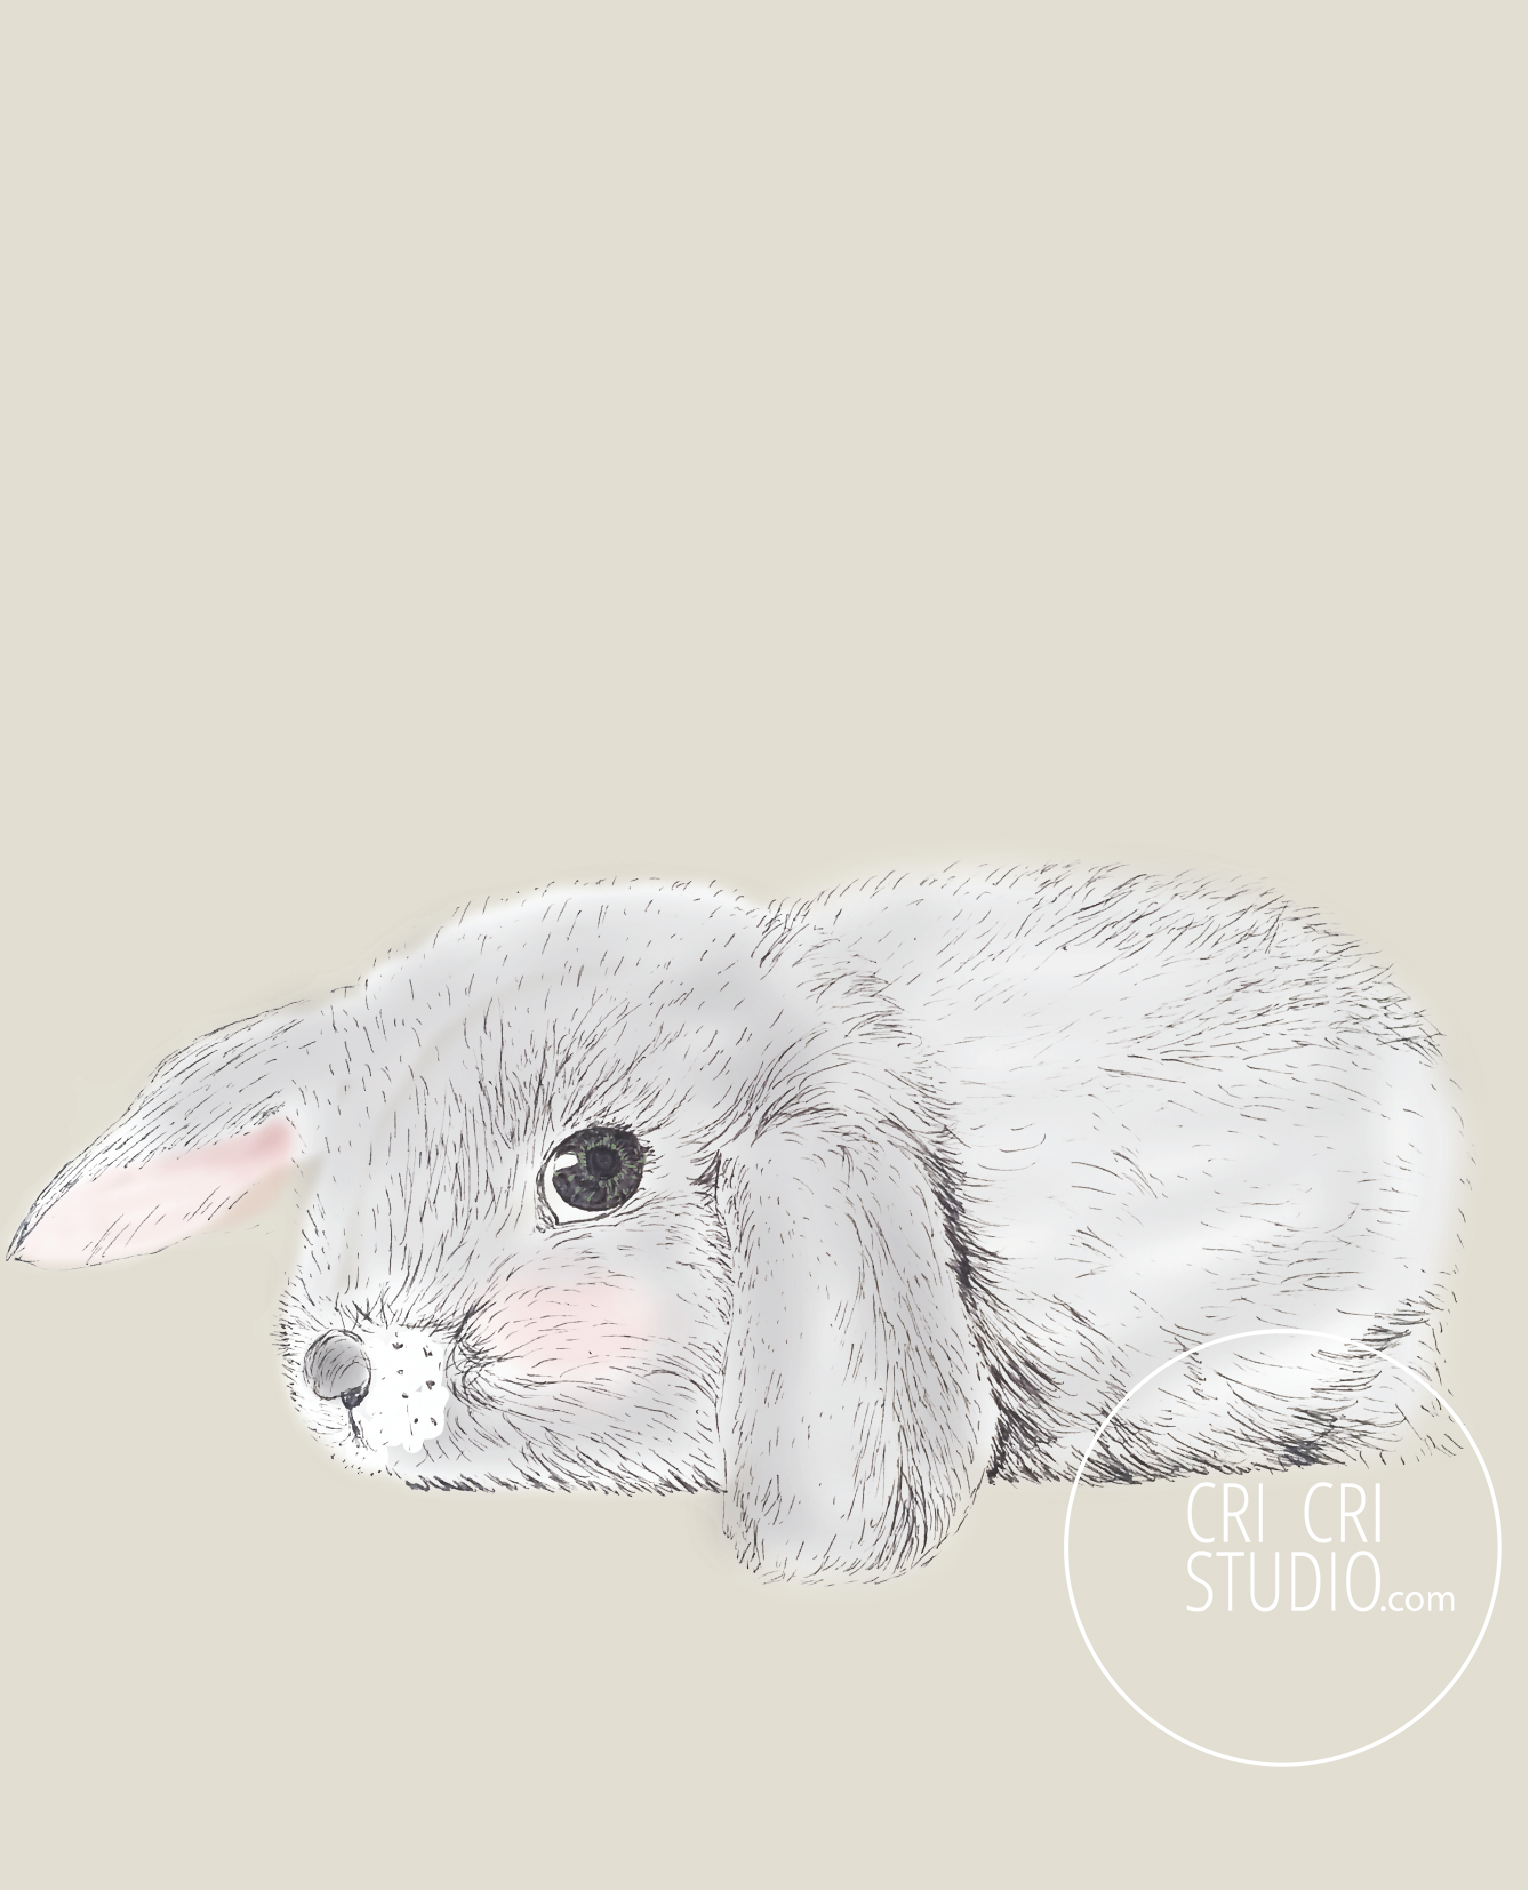 Bunny by Cri Cri Studio